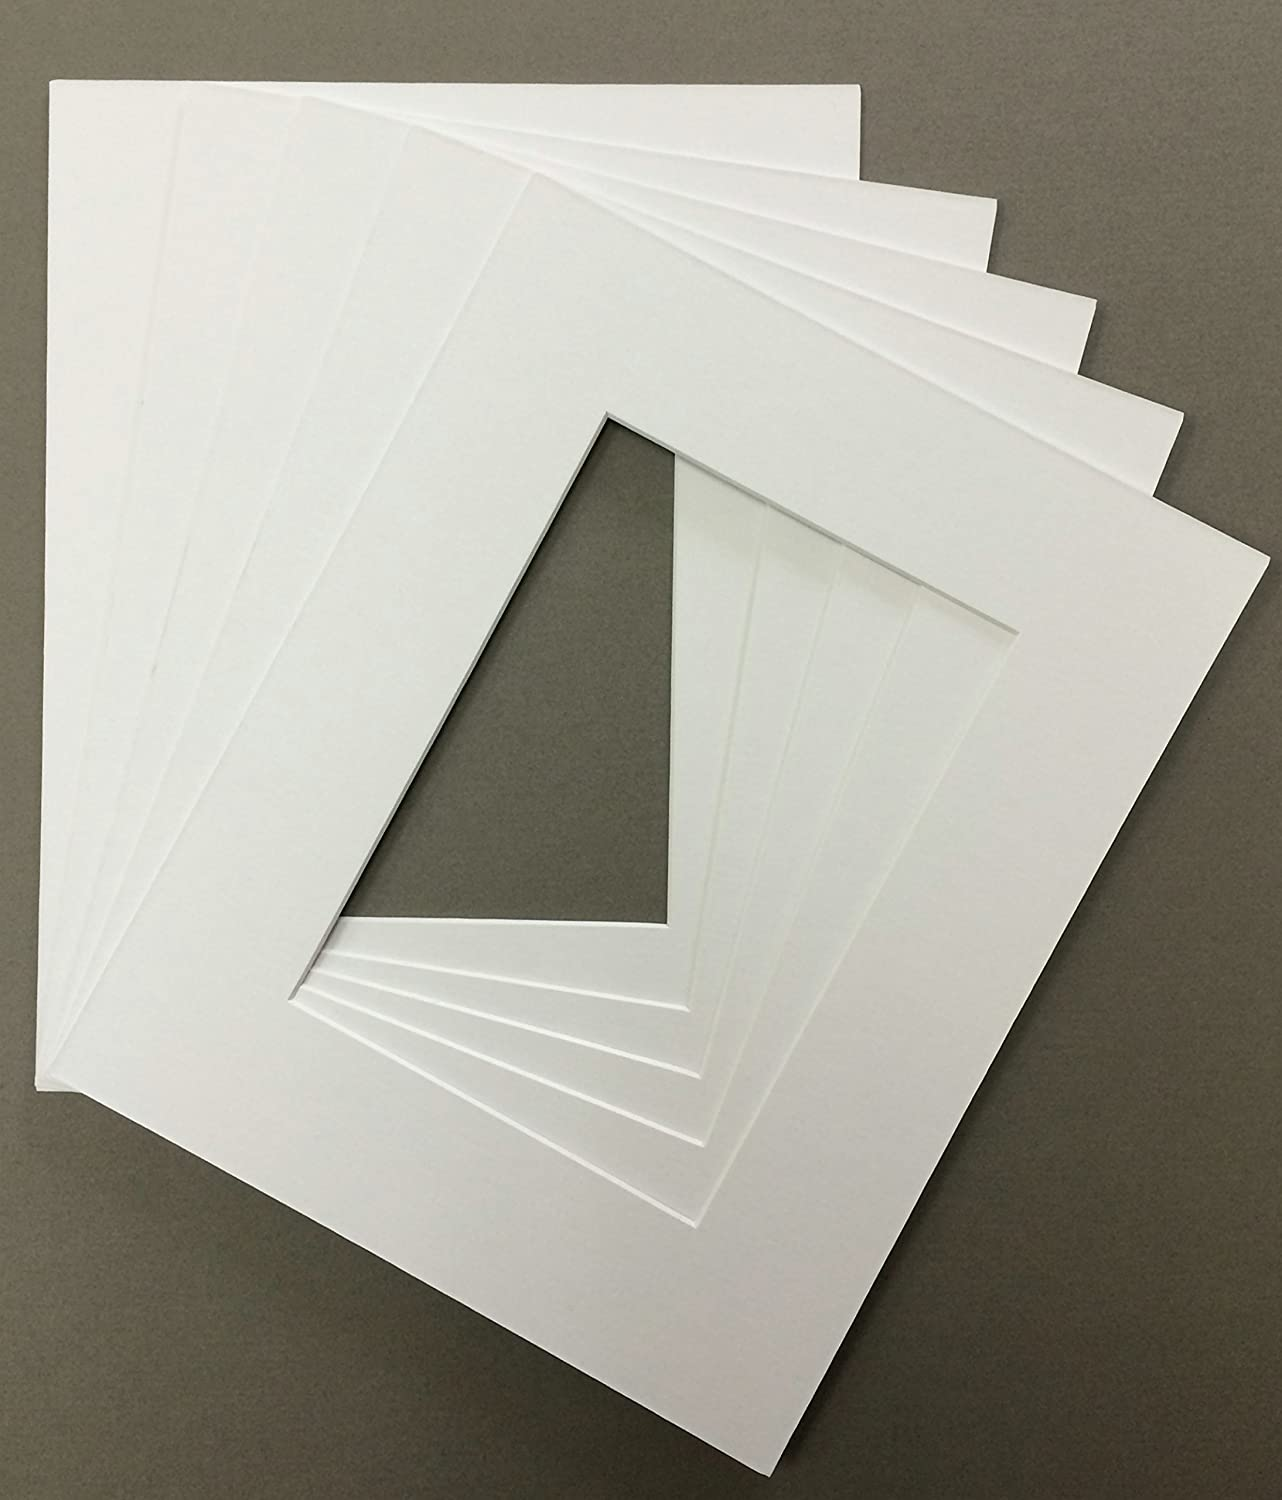 Pack of 5 18x24 White Picture Mats Mattes Matting with White Core Bevel Cut for 13x19 Pictures Bux1 Picture Matting 3326302